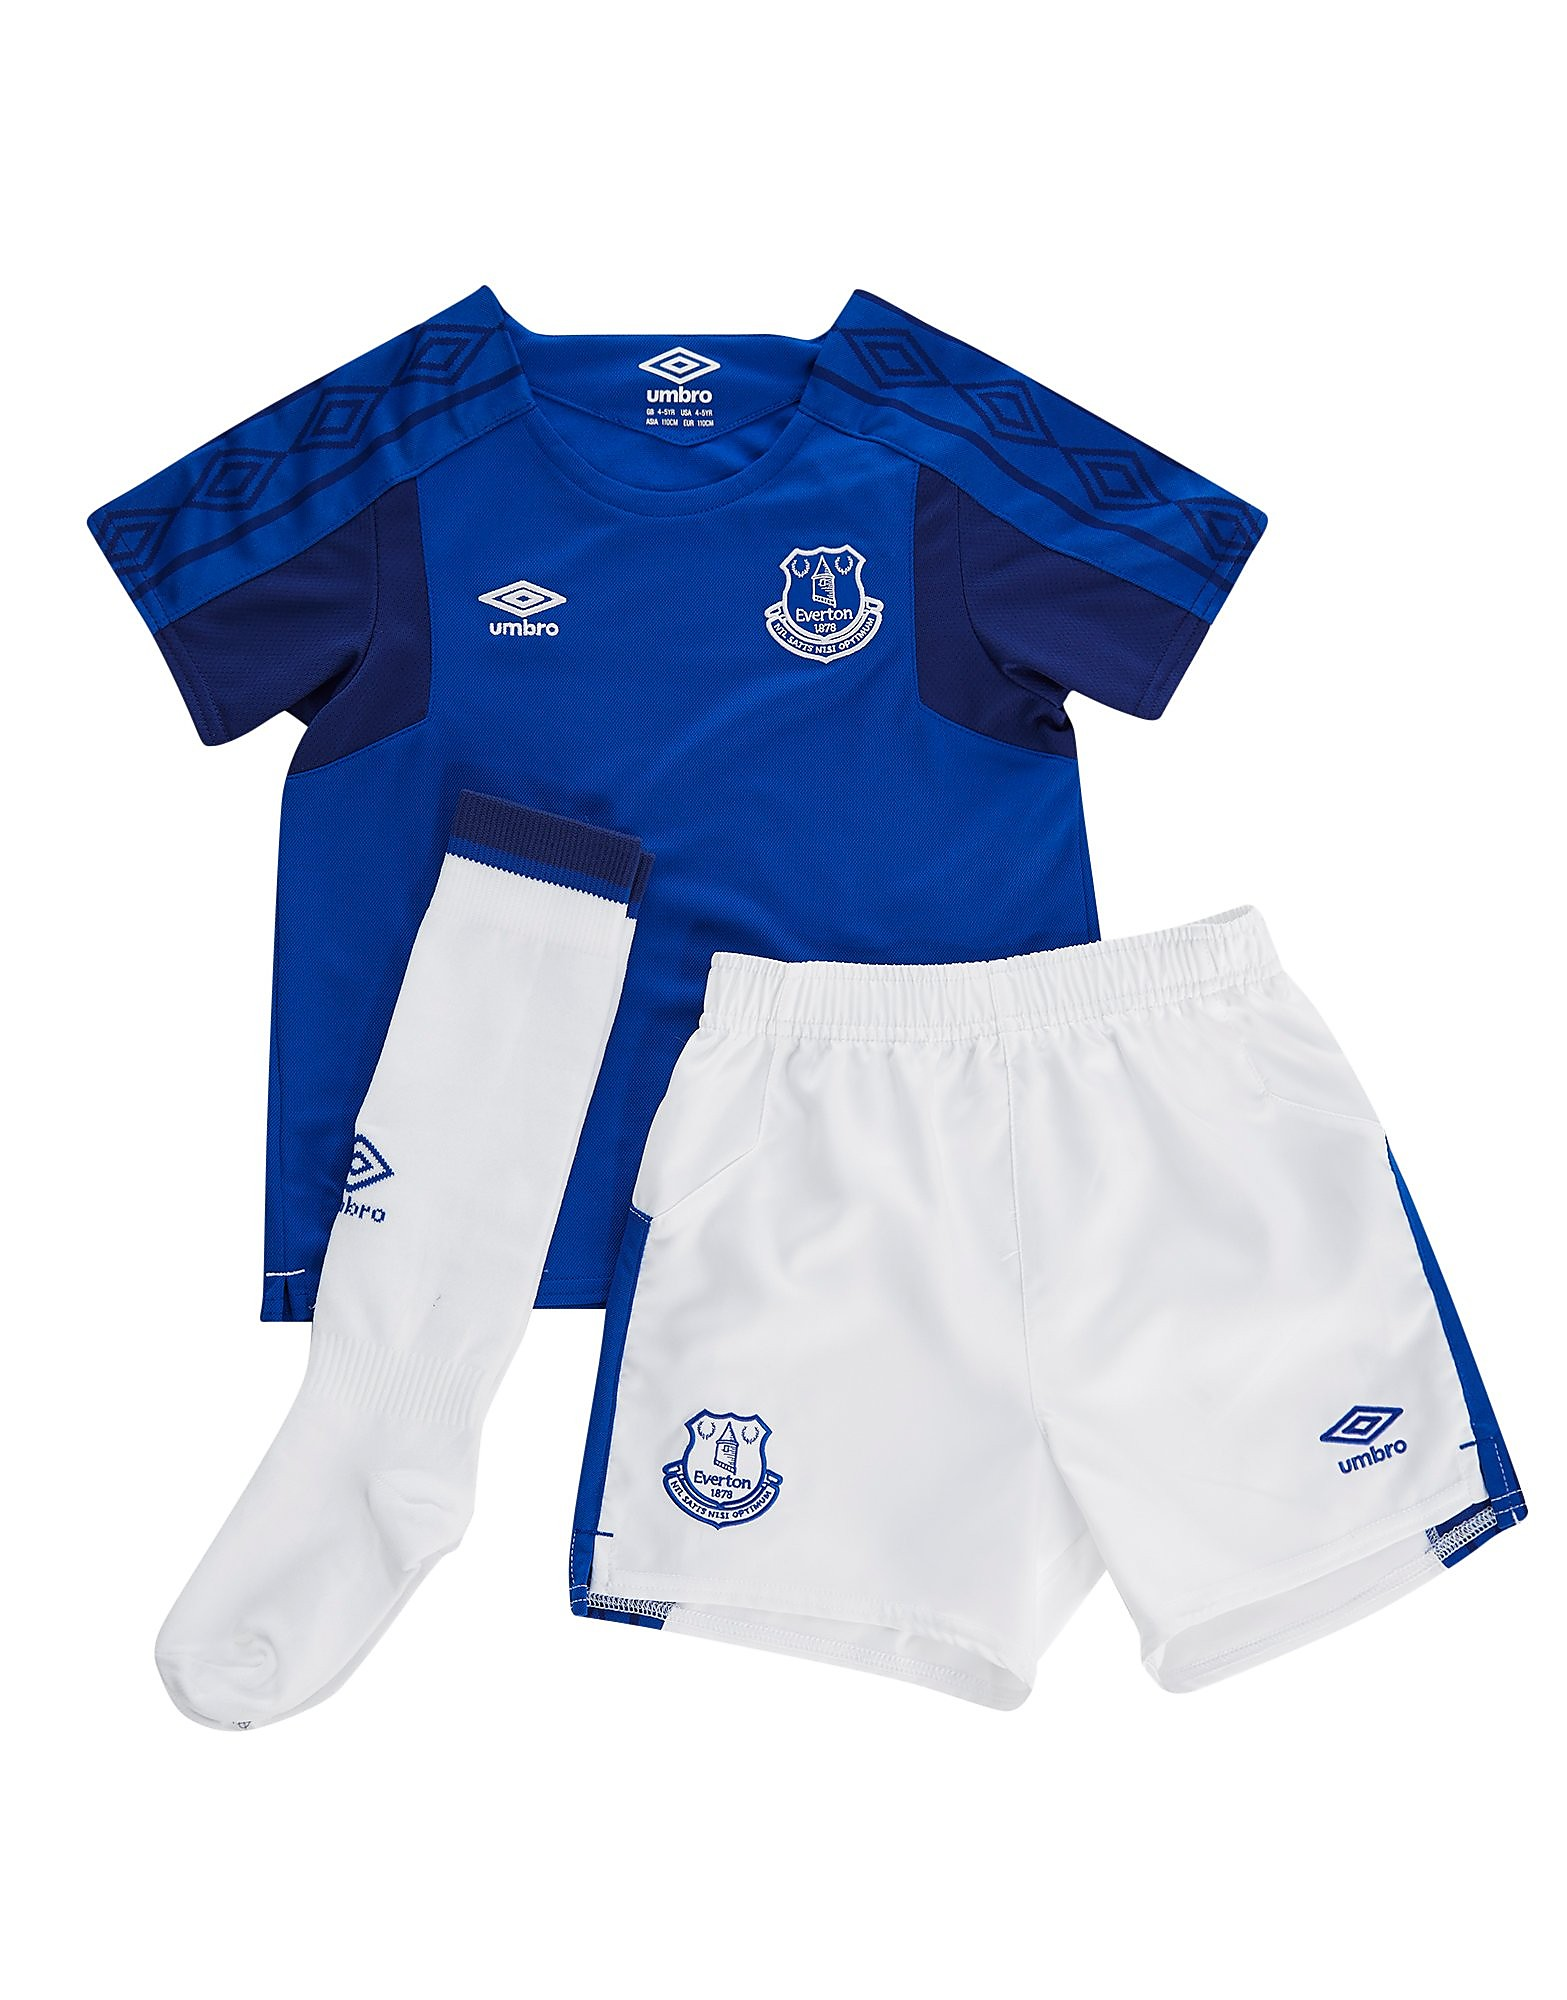 Umbro Everton FC 2017/18 Home Kit Children PRE ORDER